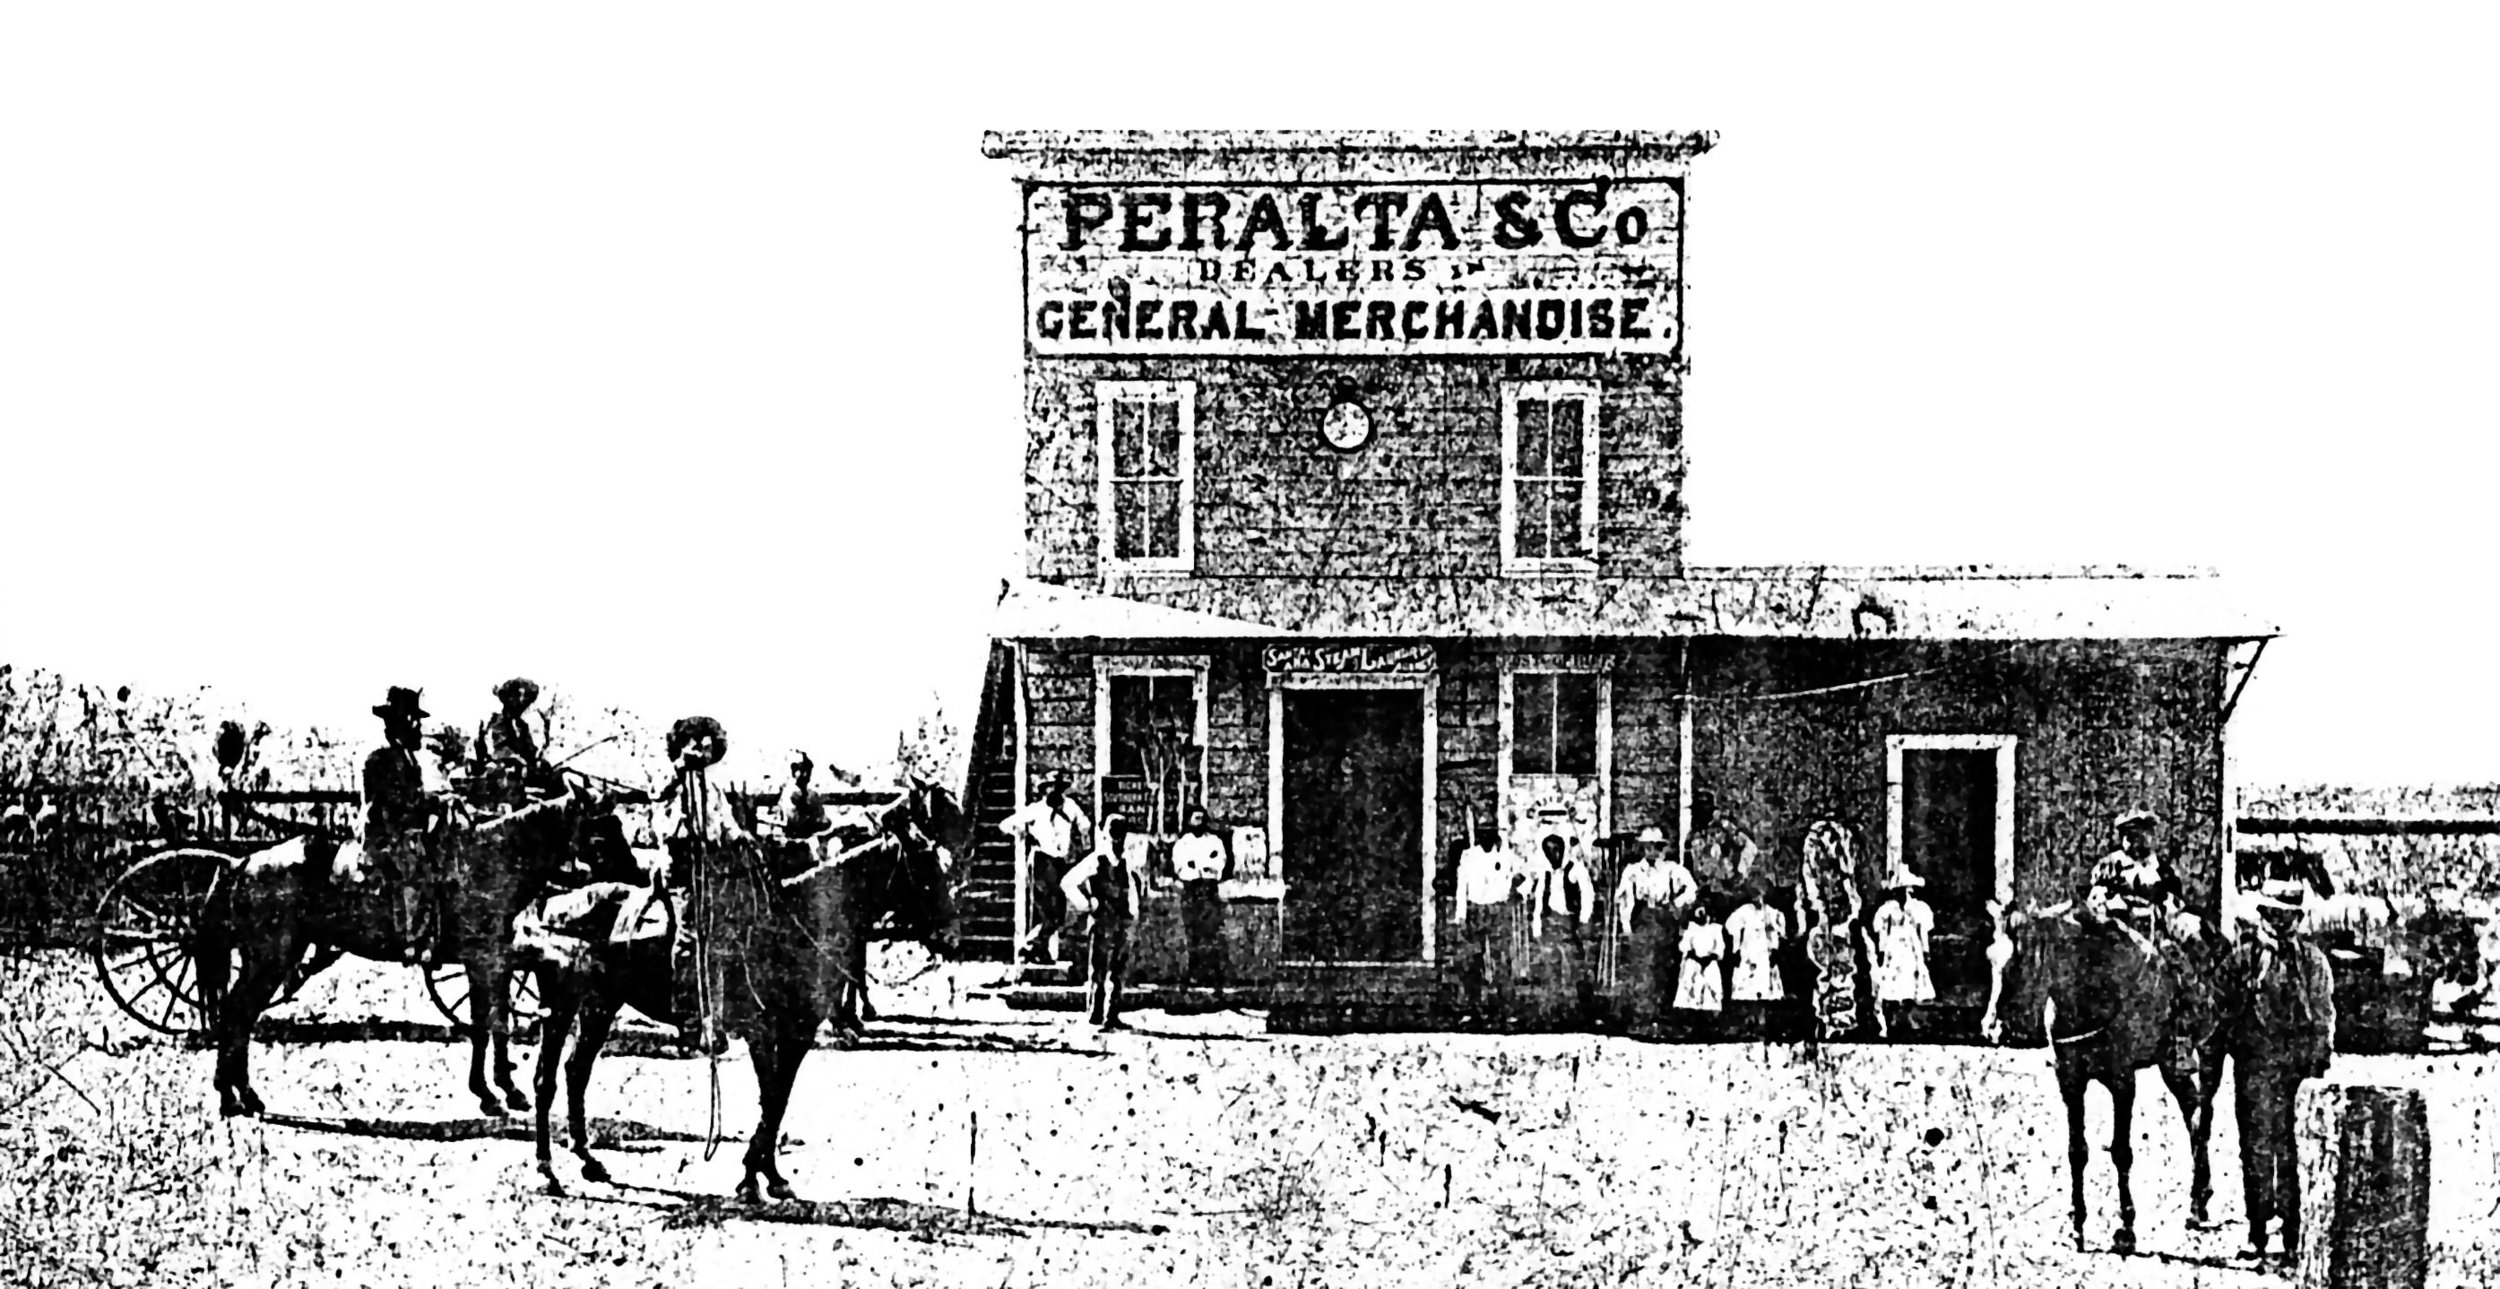 Estevan Peralta's store and post office at Yorba, circa 1898. The building was located on the north side of what is now Orangethorpe Avenue, near Van Buren.